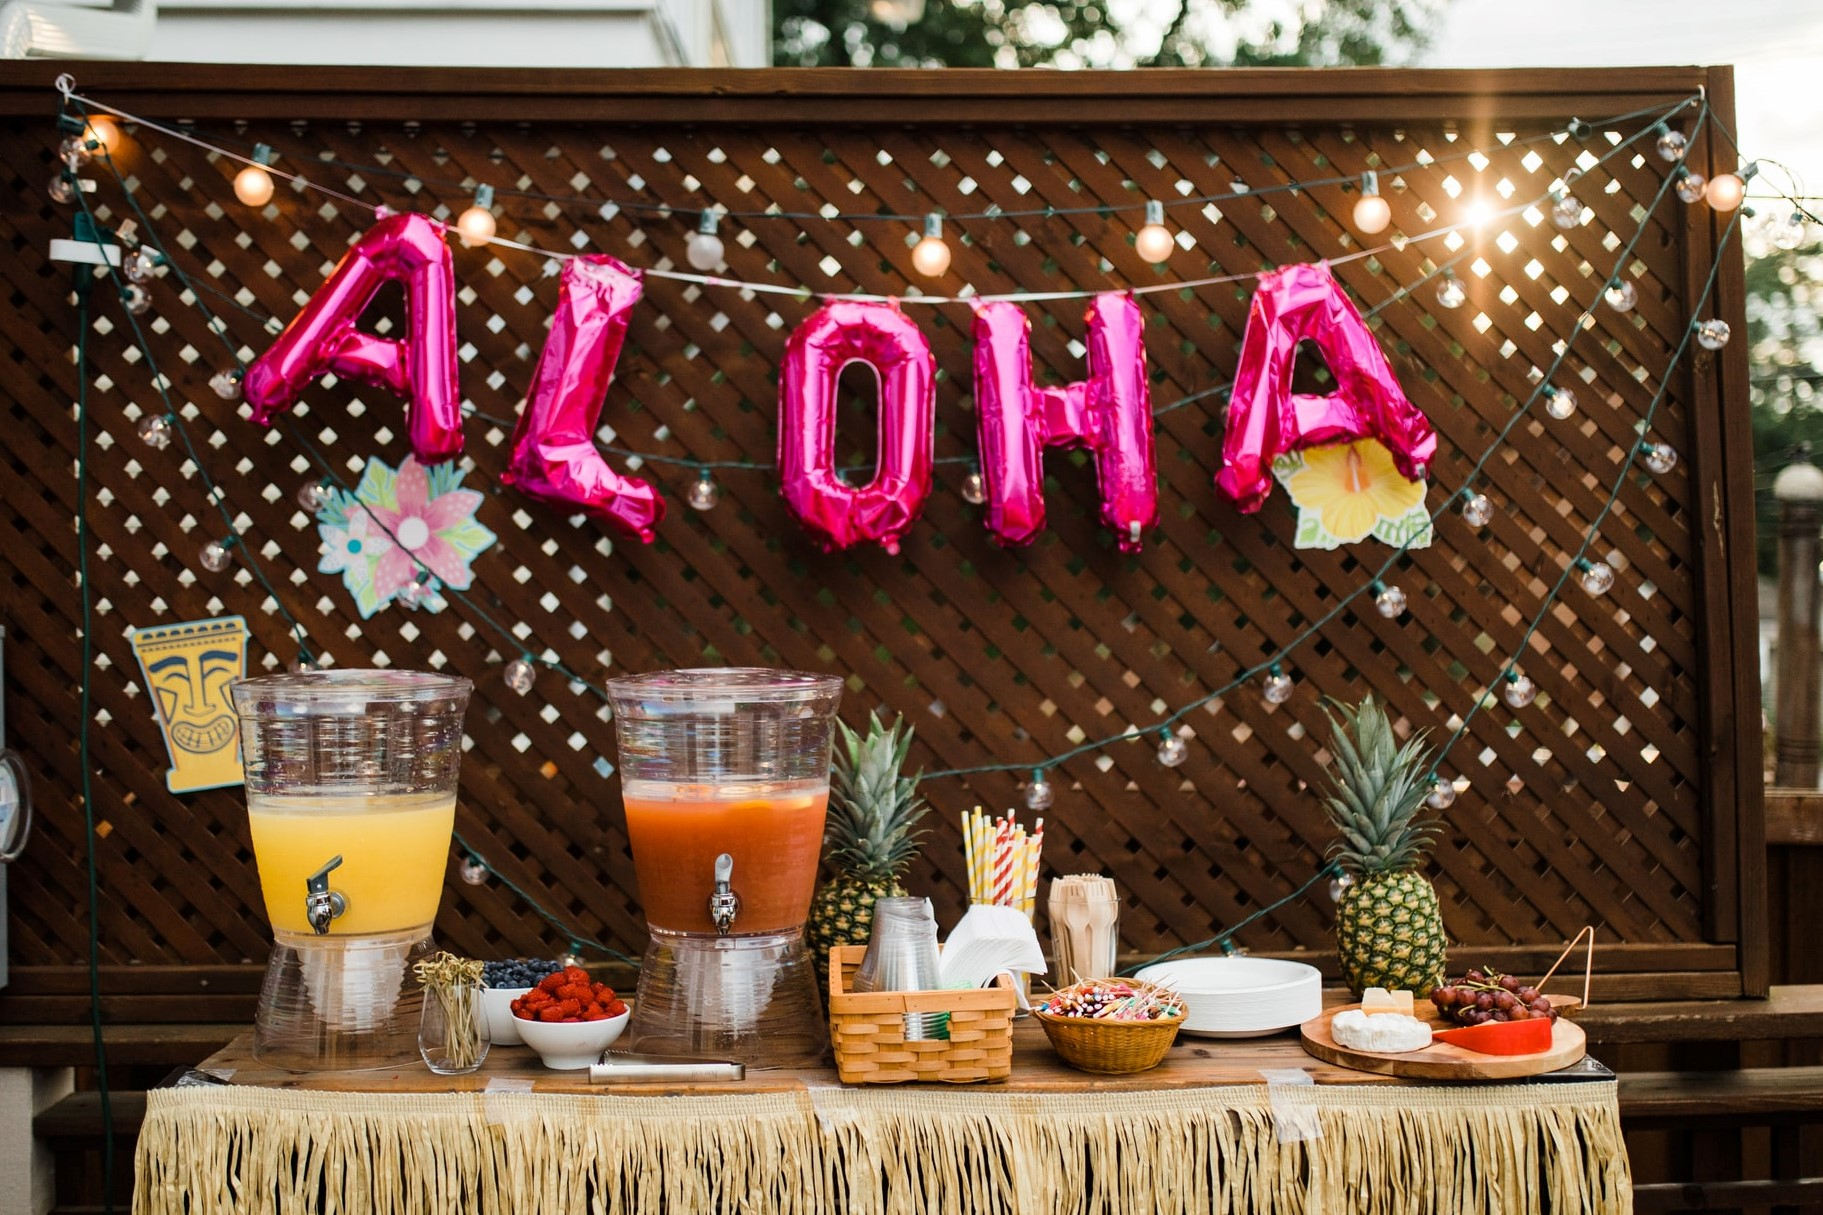 aloha party balloon outside over a party table with juices, drinks, food, and a luau theme